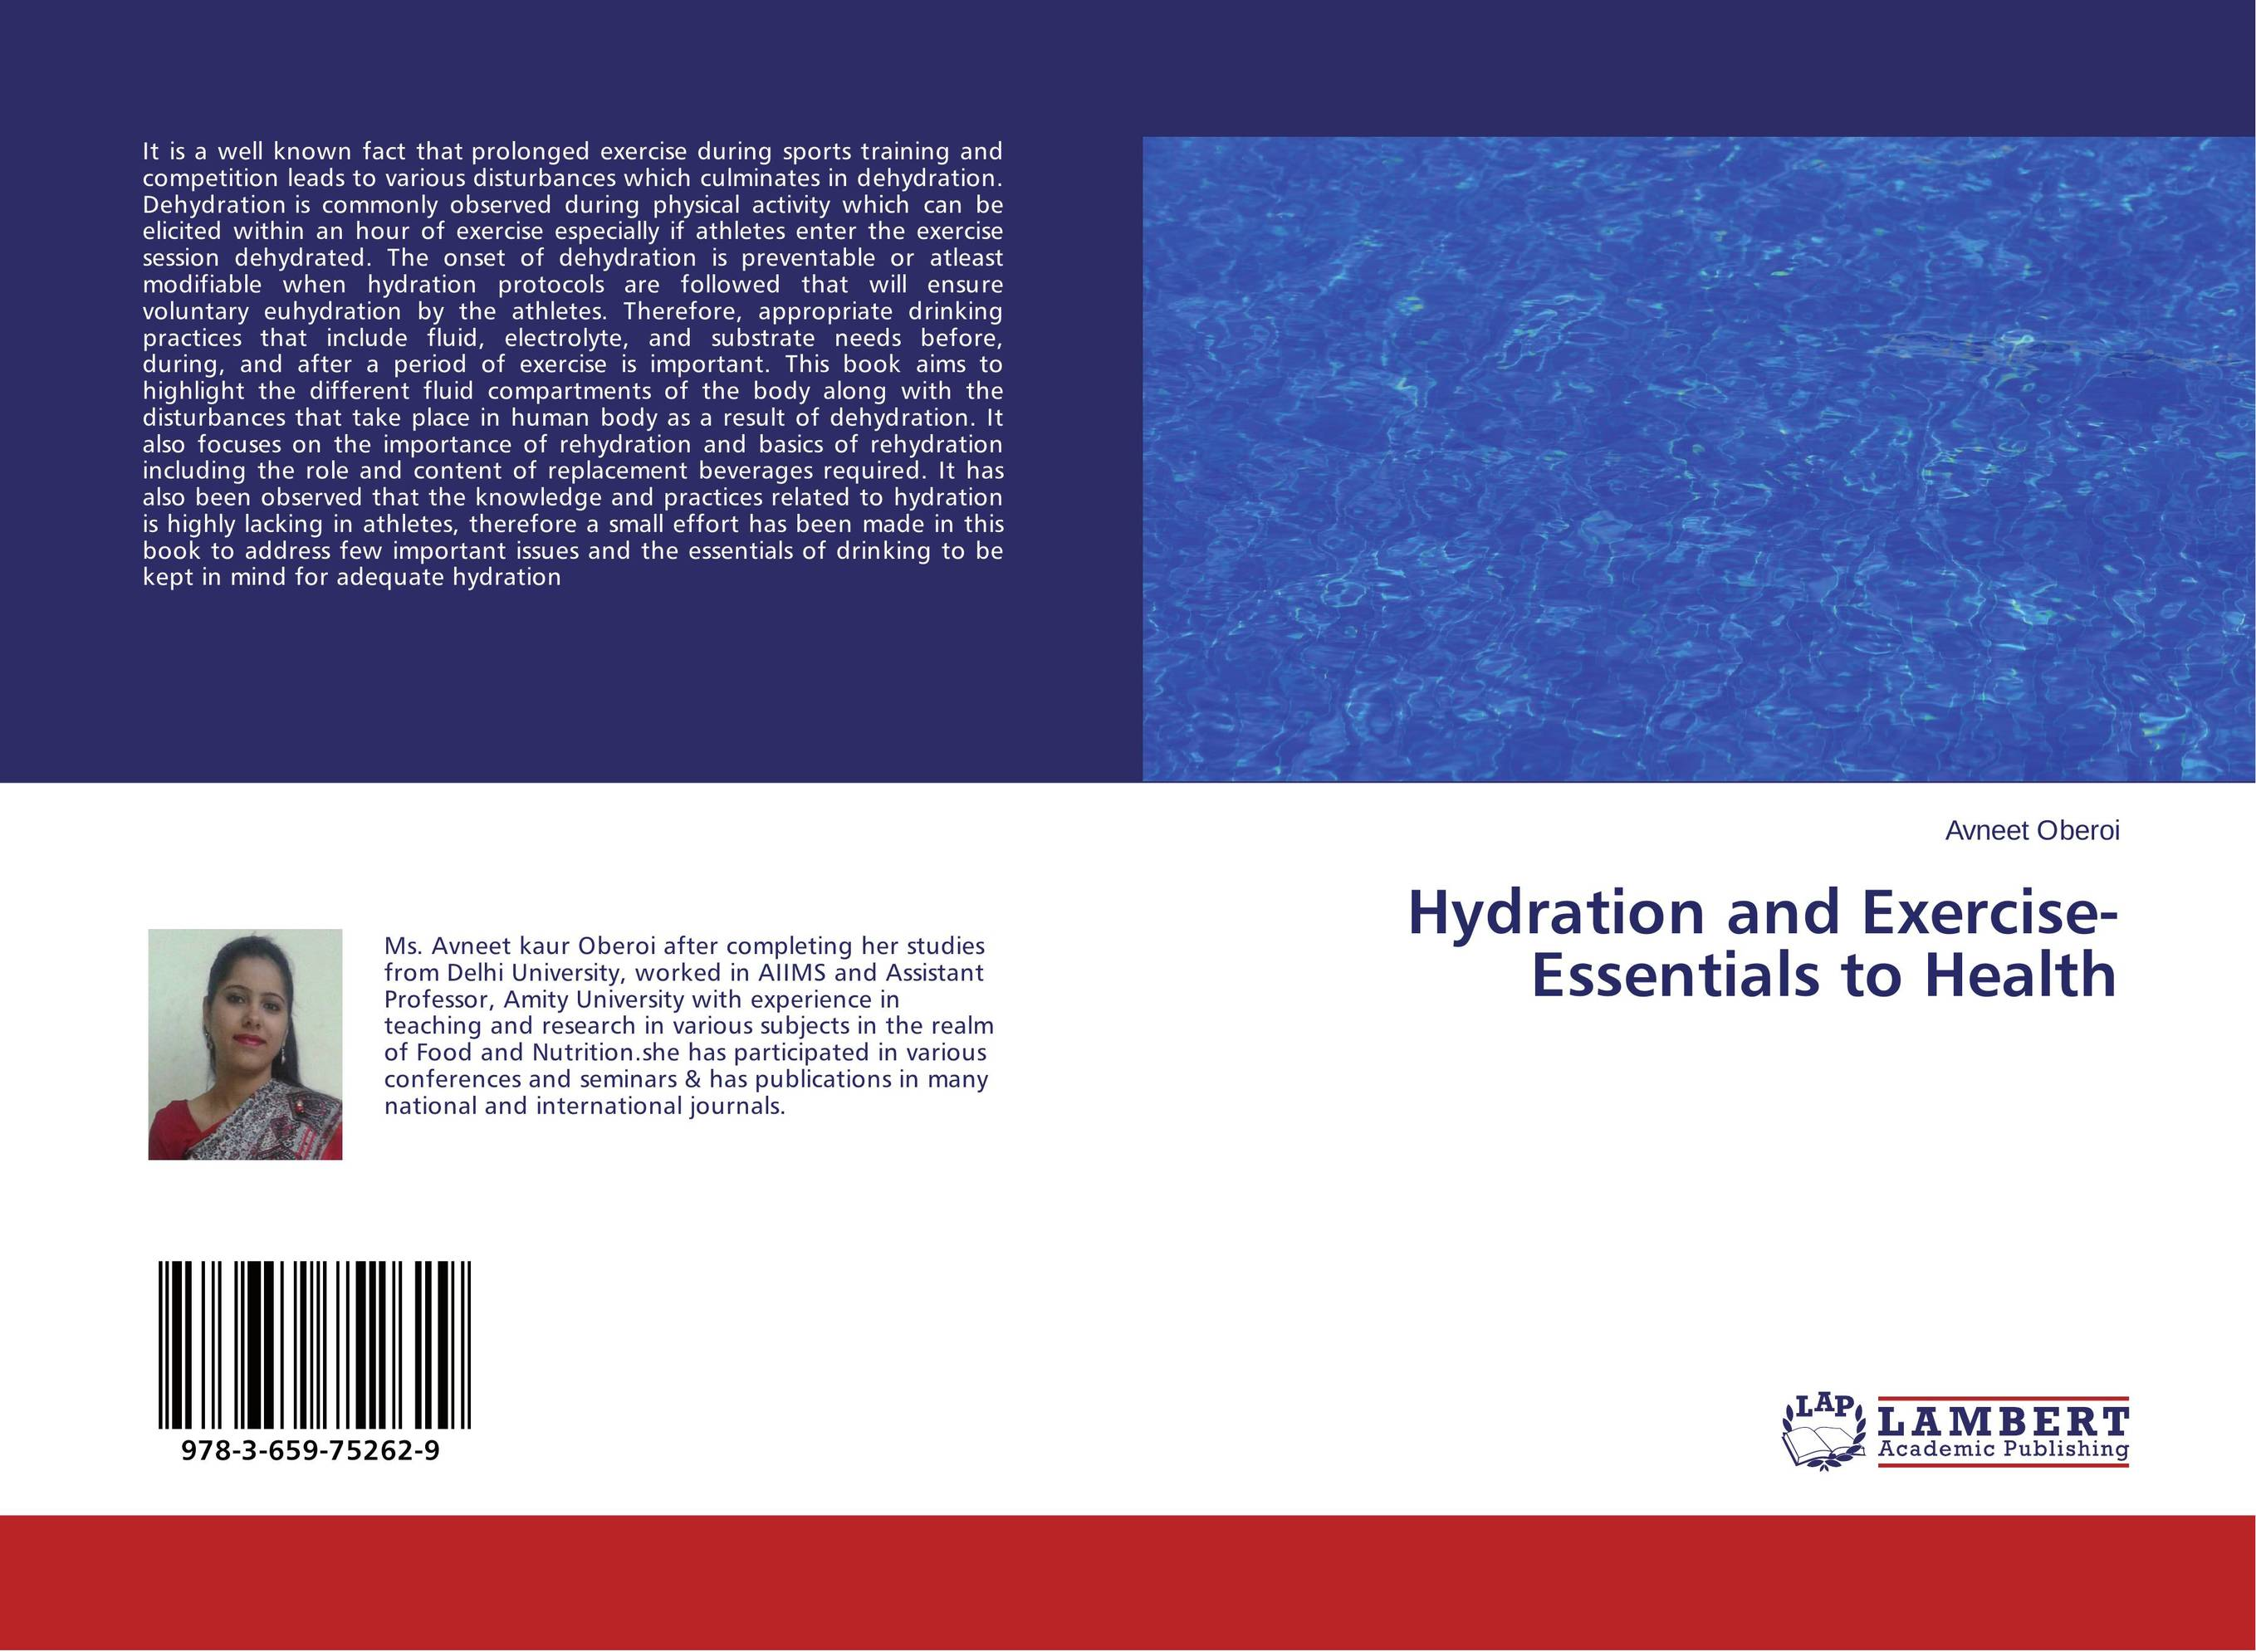 Hydration and Exercise-Essentials to Health presidential nominee will address a gathering